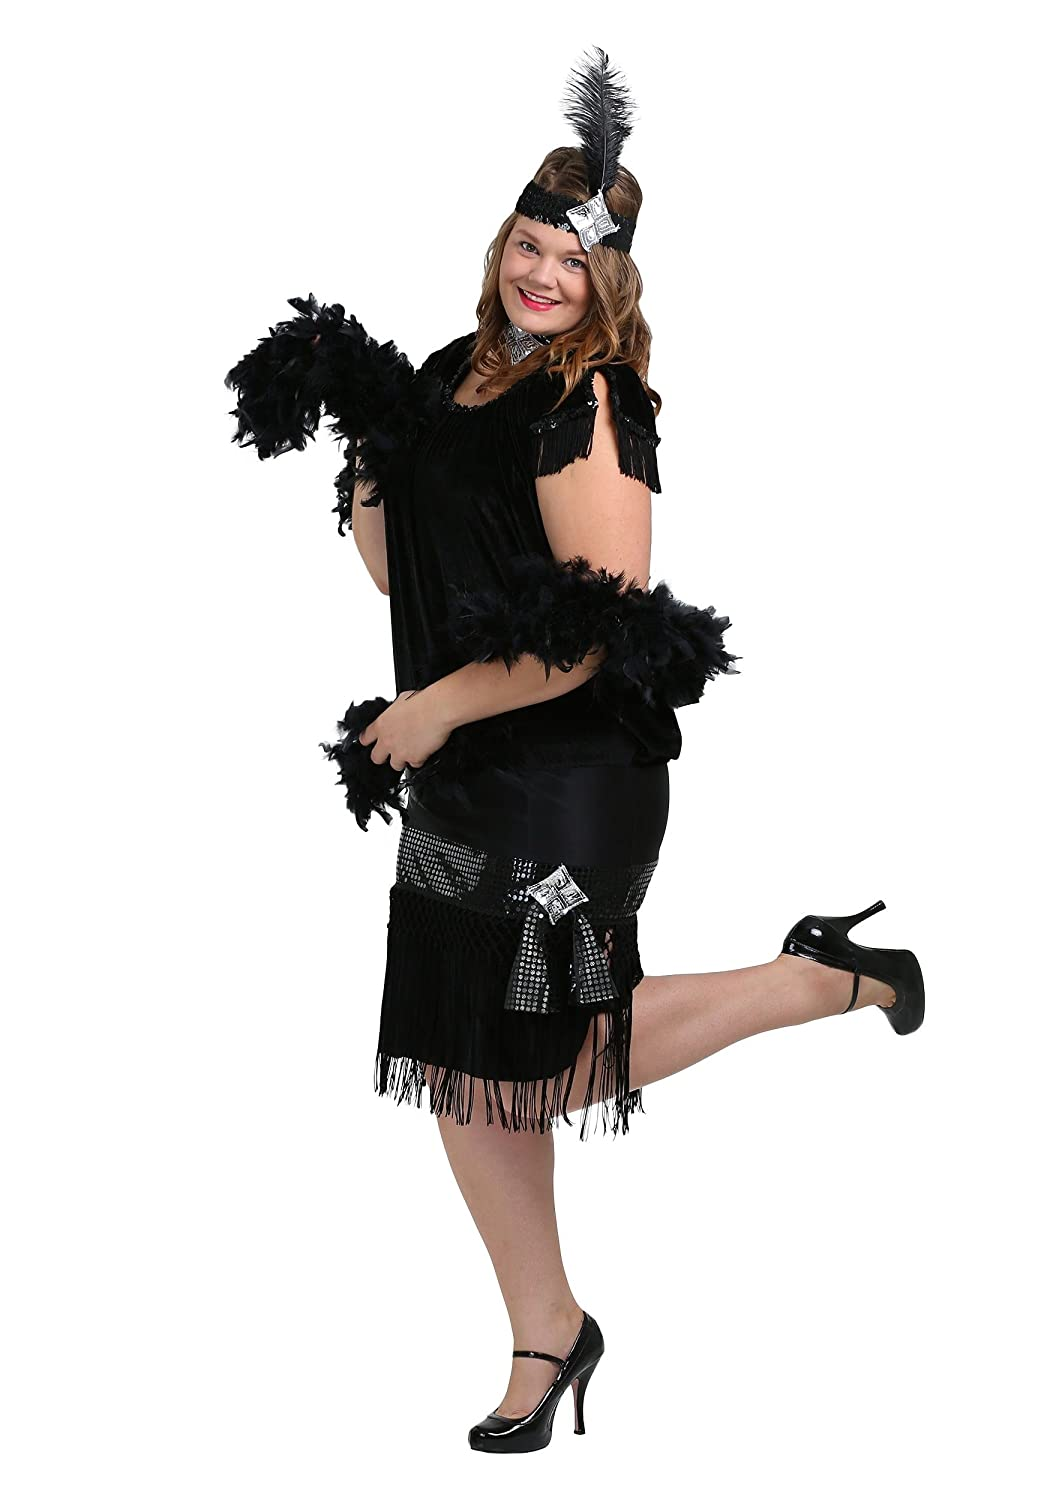 1920s Costumes: Flapper, Great Gatsby, Gangster Girl FunCostumes Womens Deluxe Velvet Flapper Costume $59.99 AT vintagedancer.com